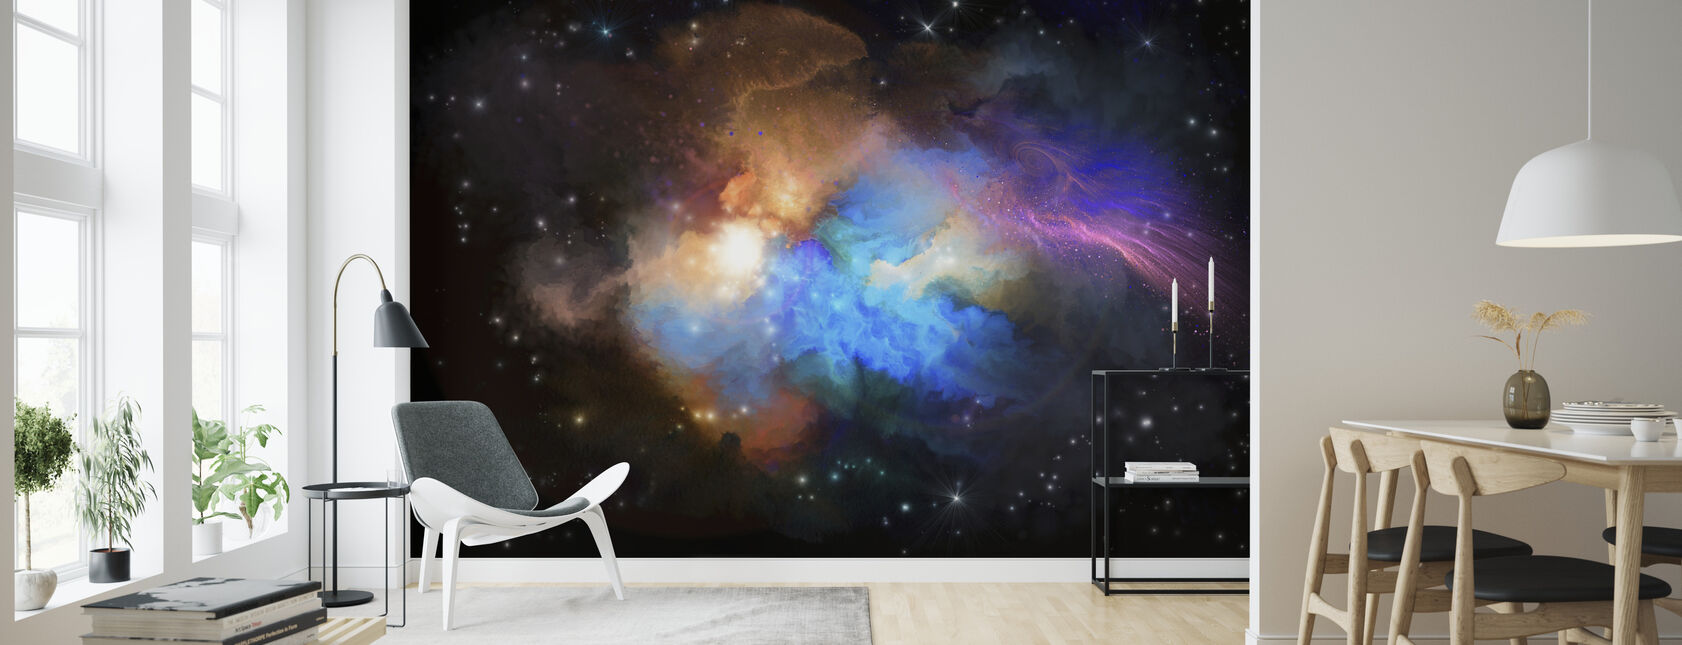 Multicolored Nebula - Wallpaper - Living Room